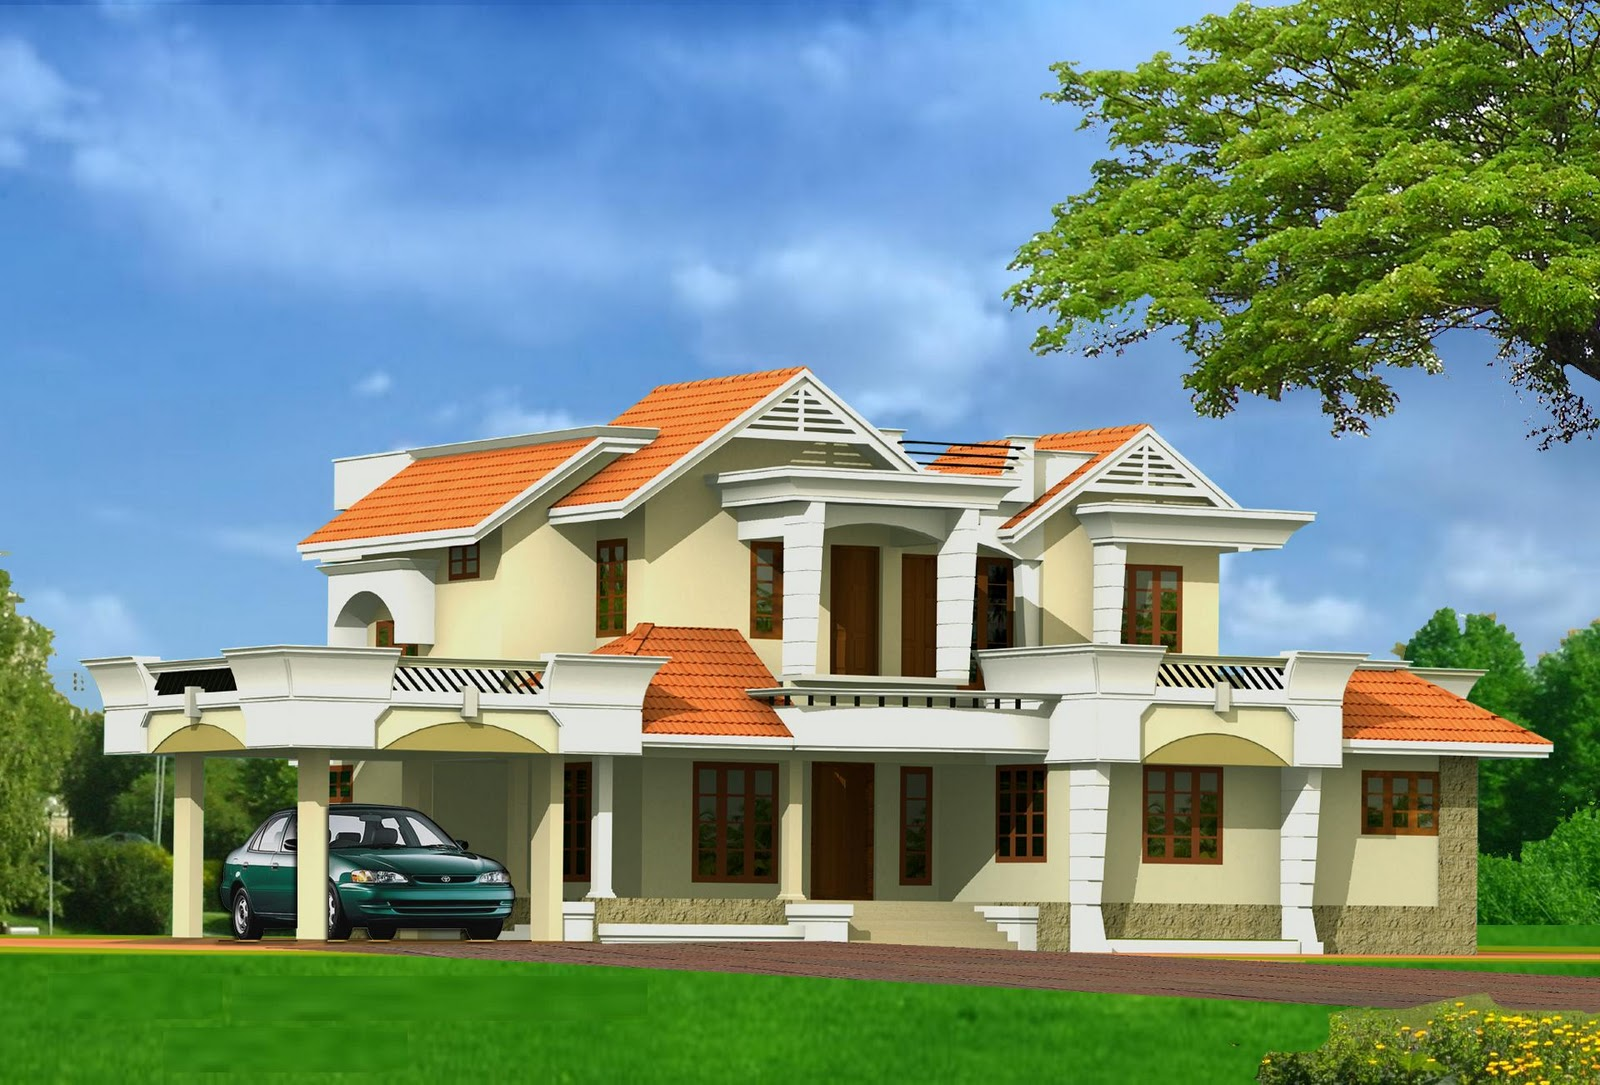 House plans and design architectural designs of for Design of building house